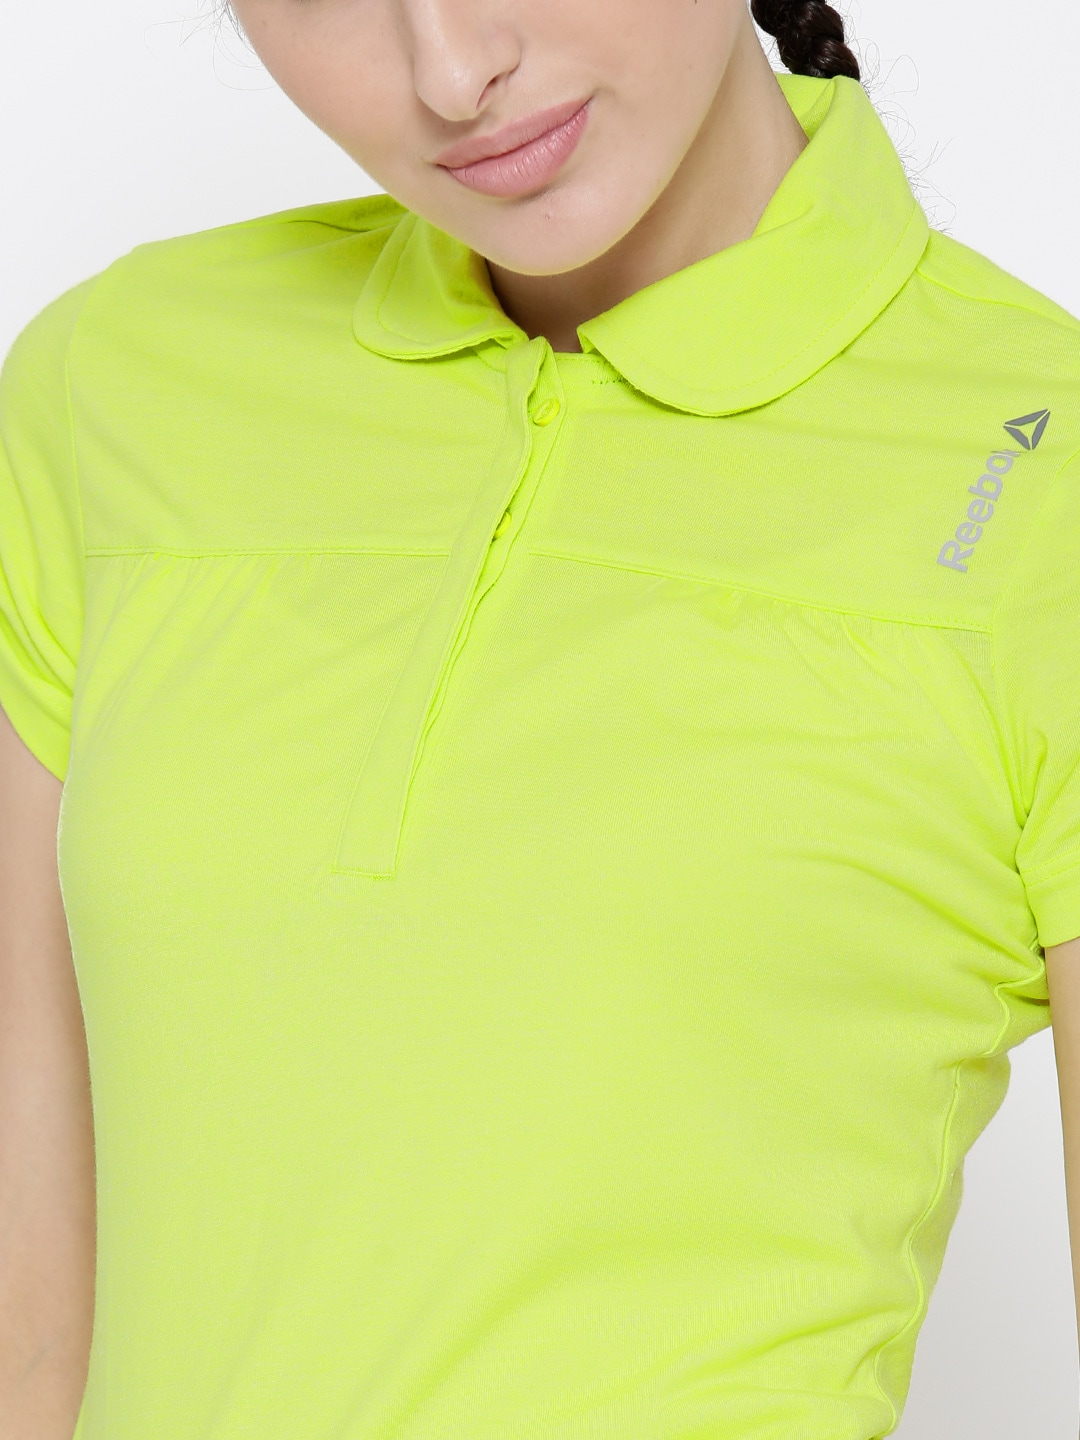 ff8d98210c100f reebok polo shirts womens green cheap   OFF47% The Largest Catalog ...